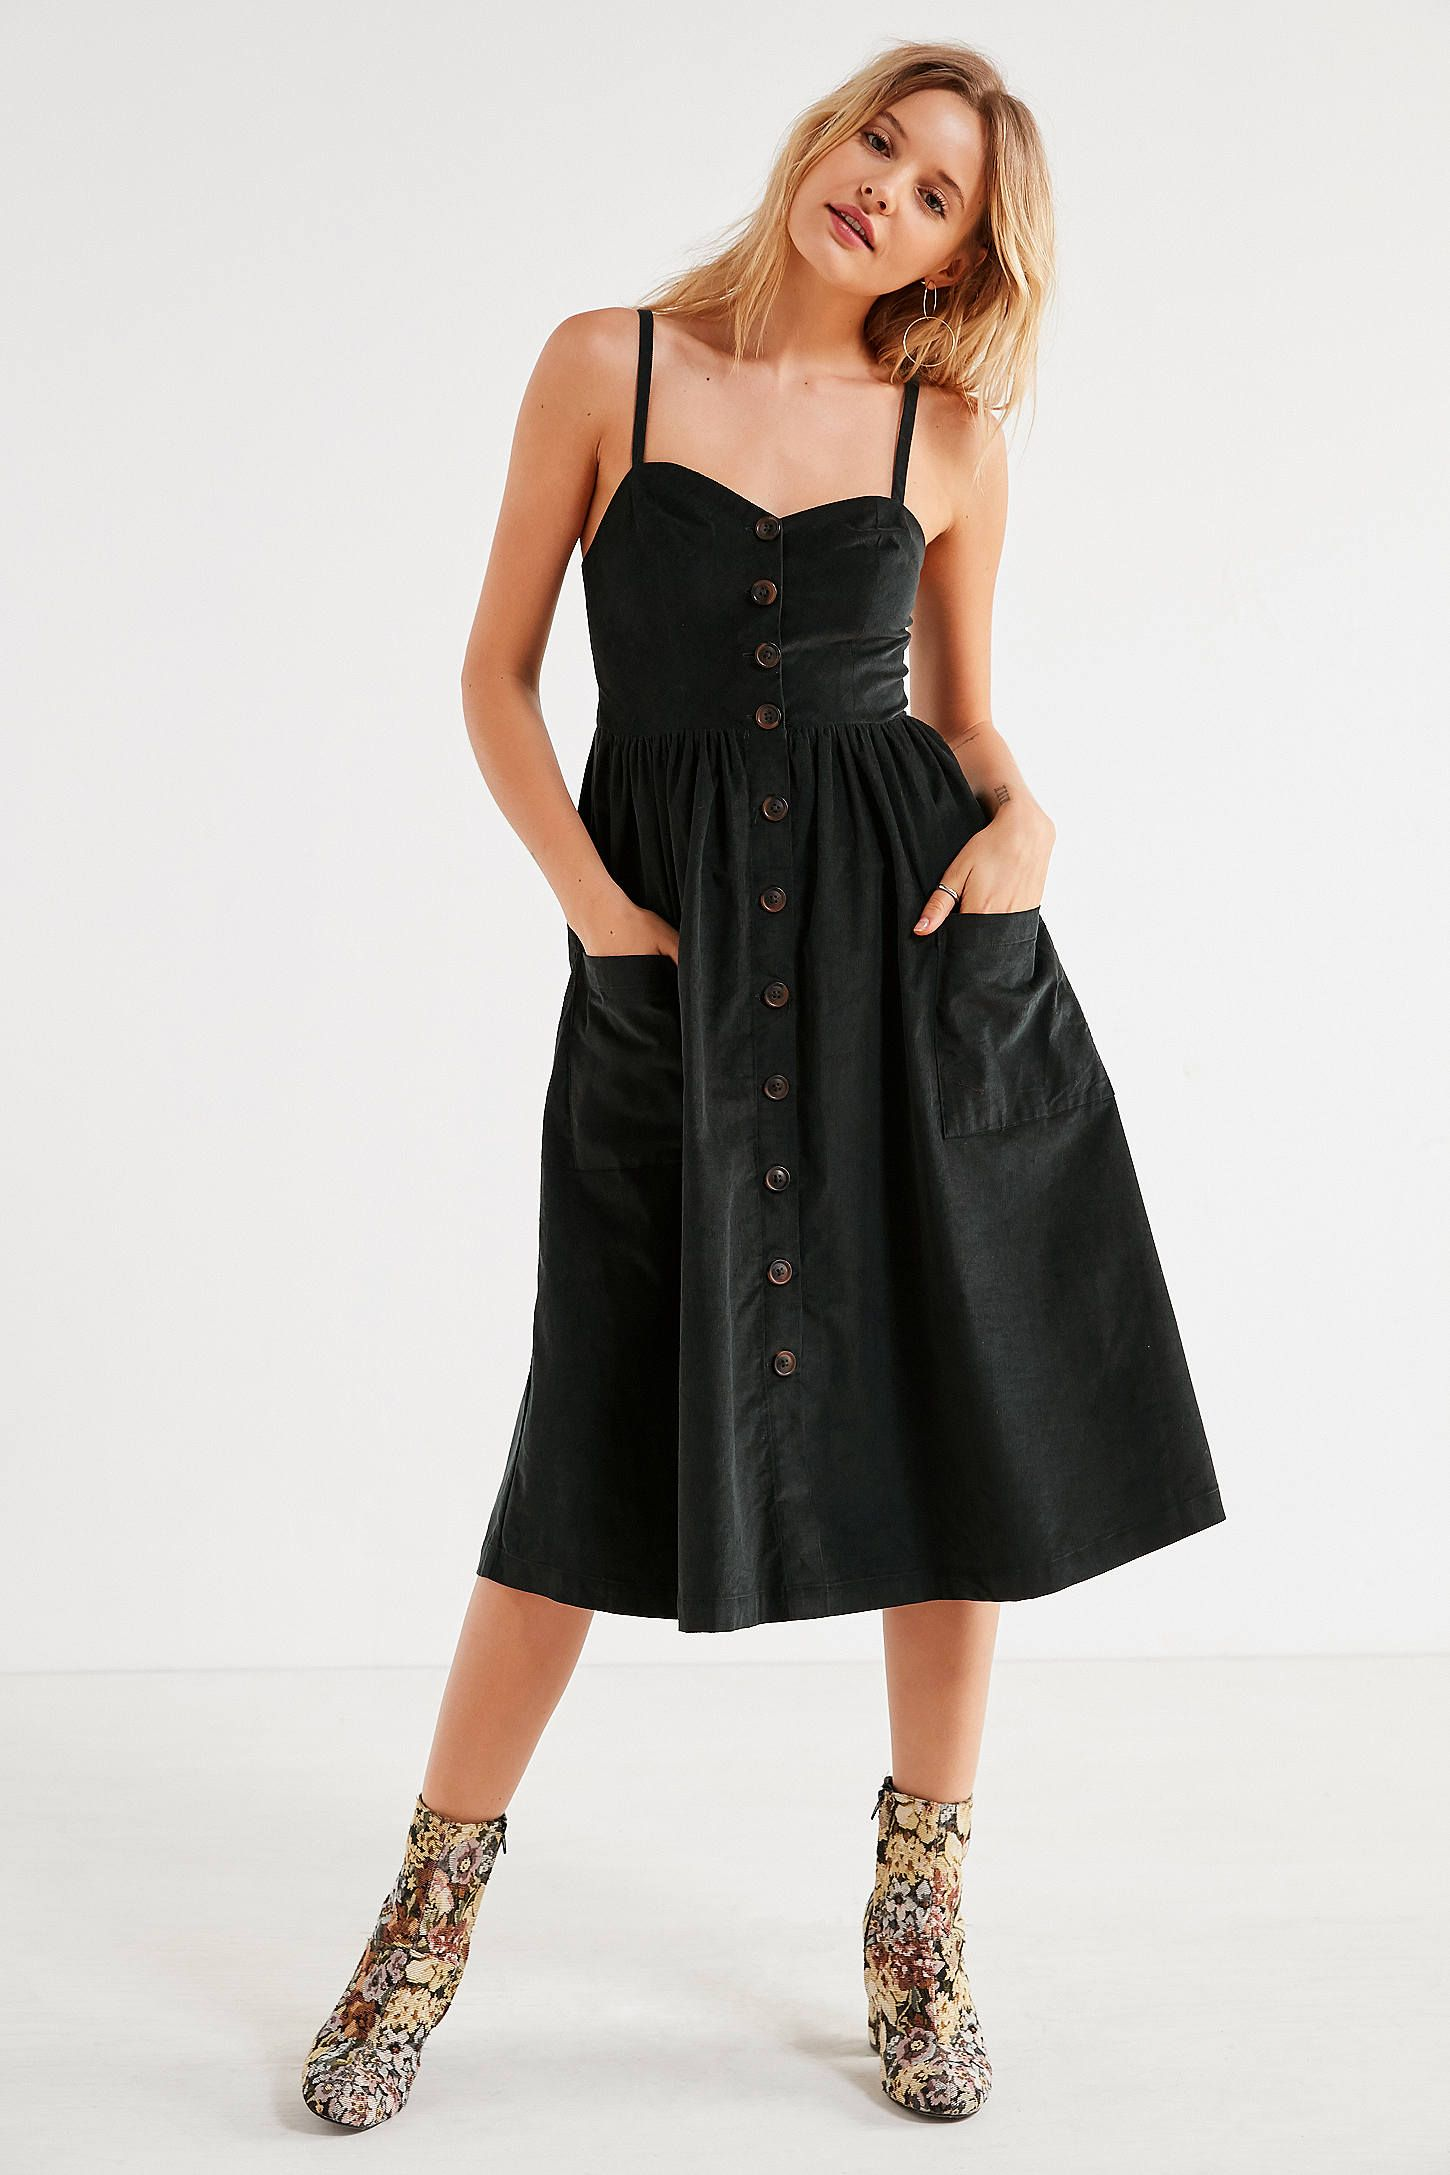 99d13ccf36b Shop UO Emilia Corduroy Button-Down Midi Dress at Urban Outfitters today.  We carry all the latest styles